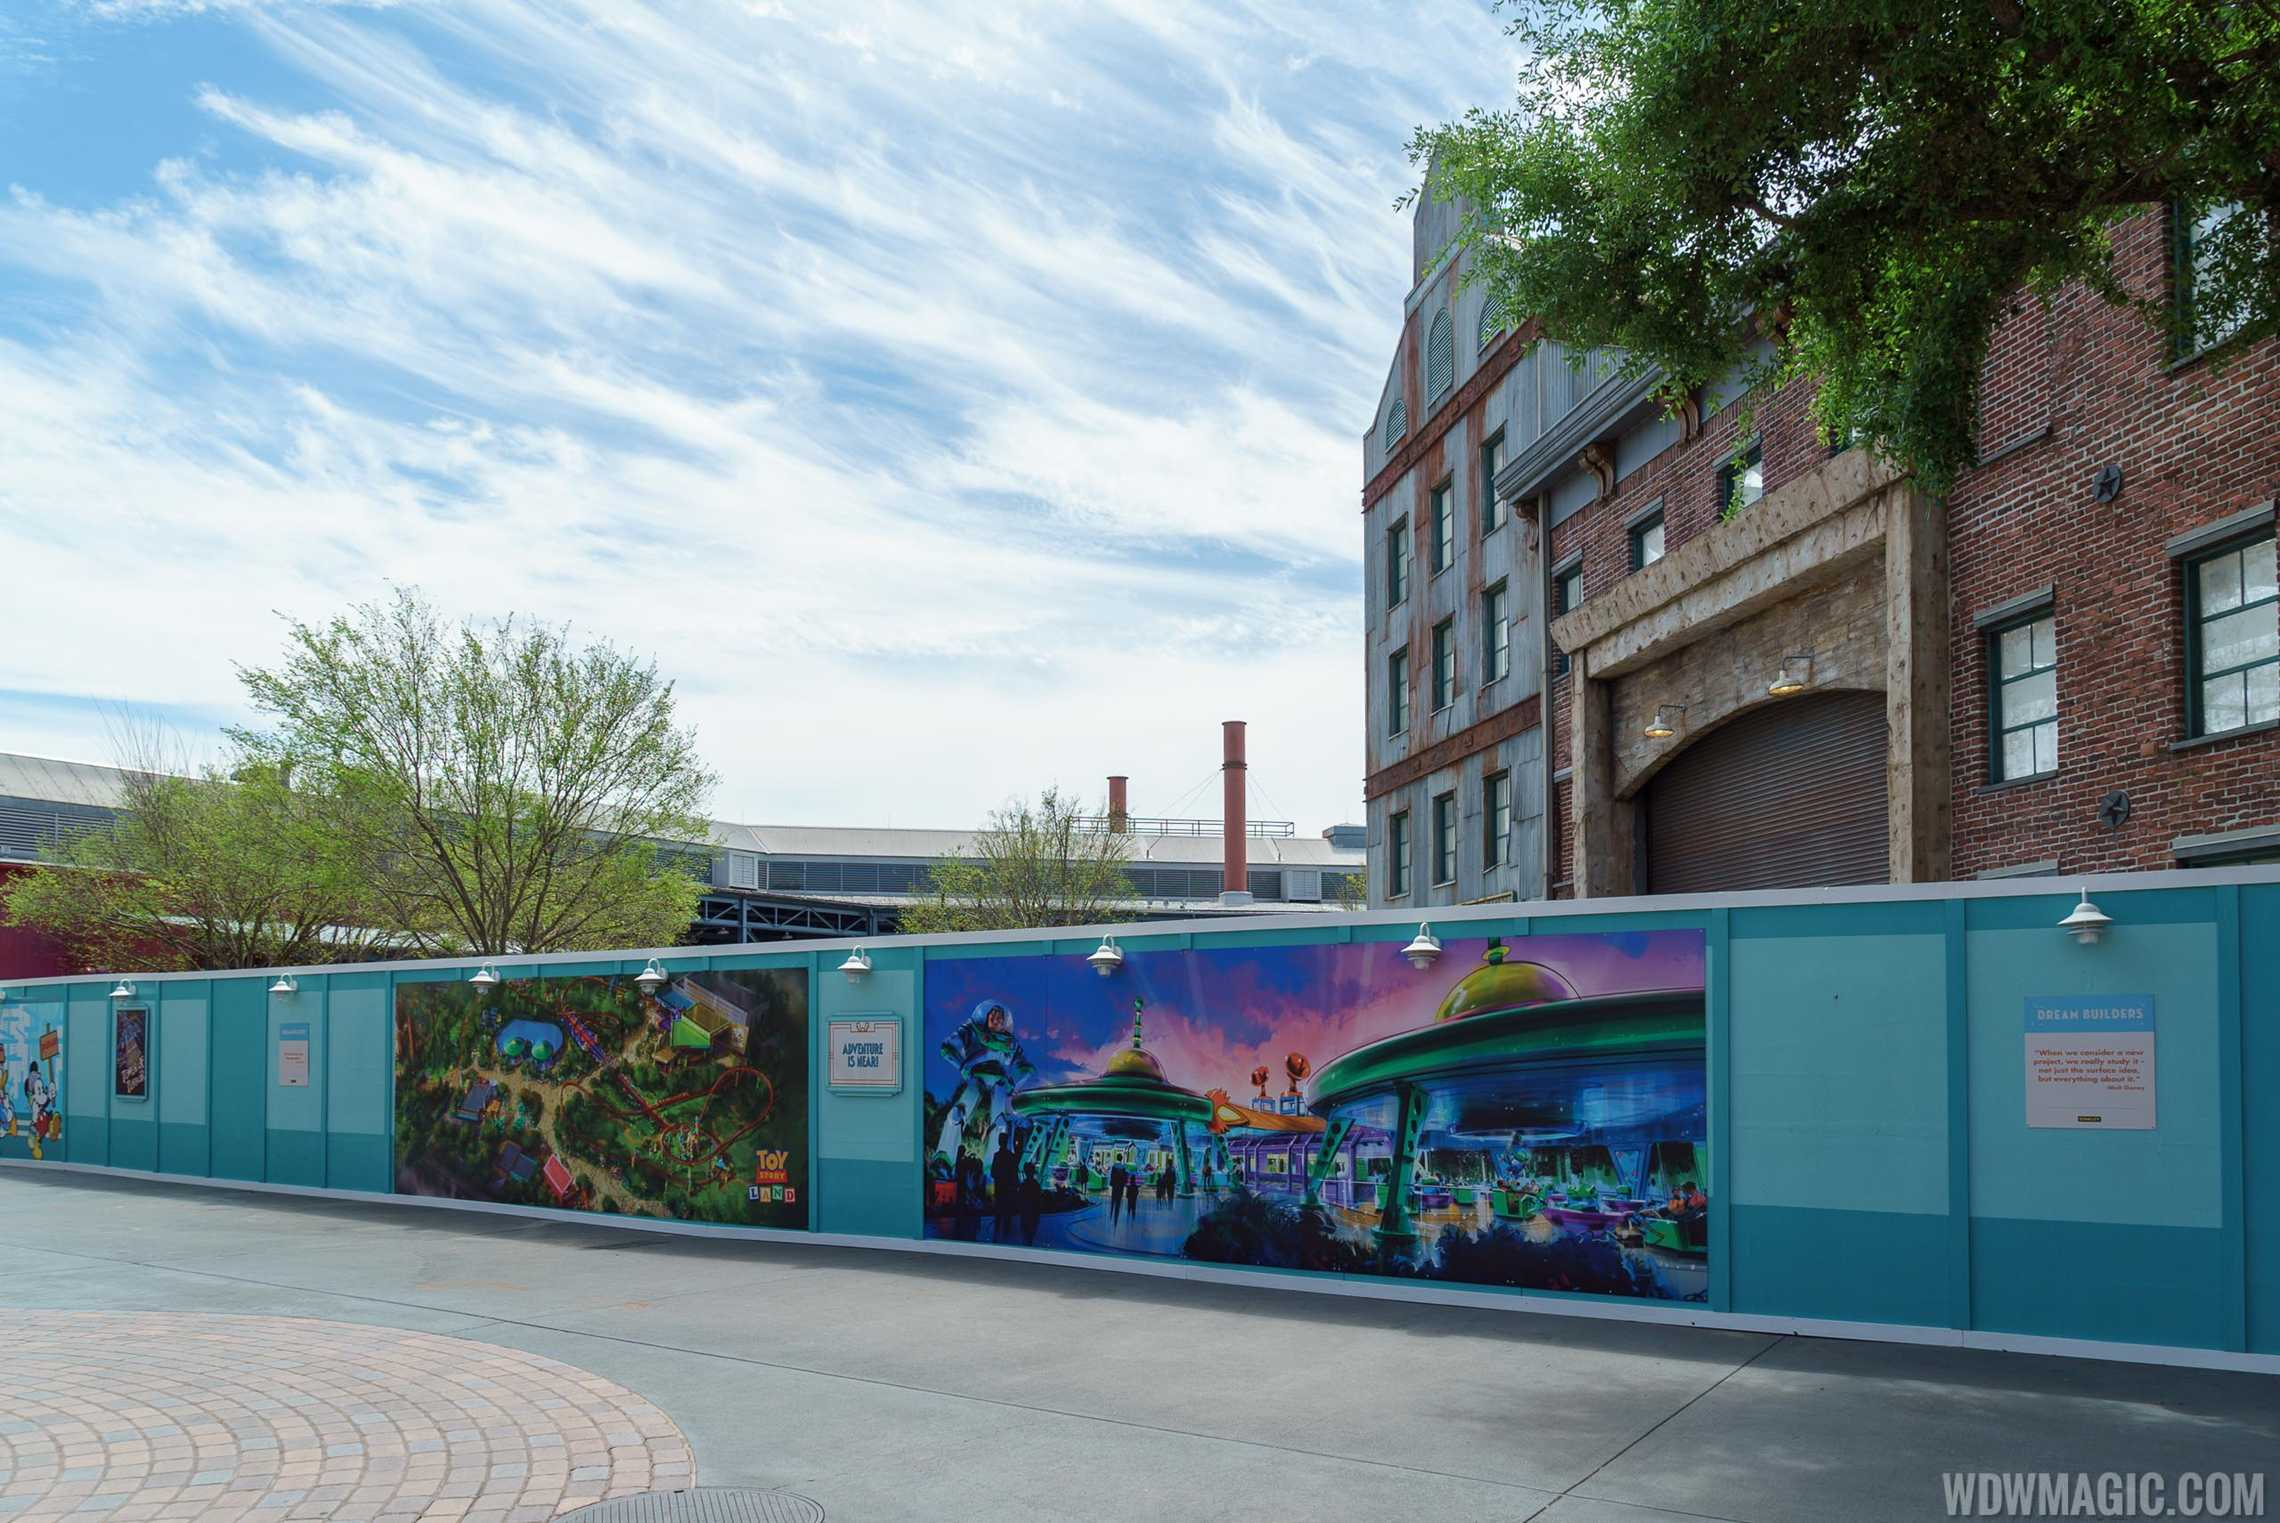 Walls near Pixar Place